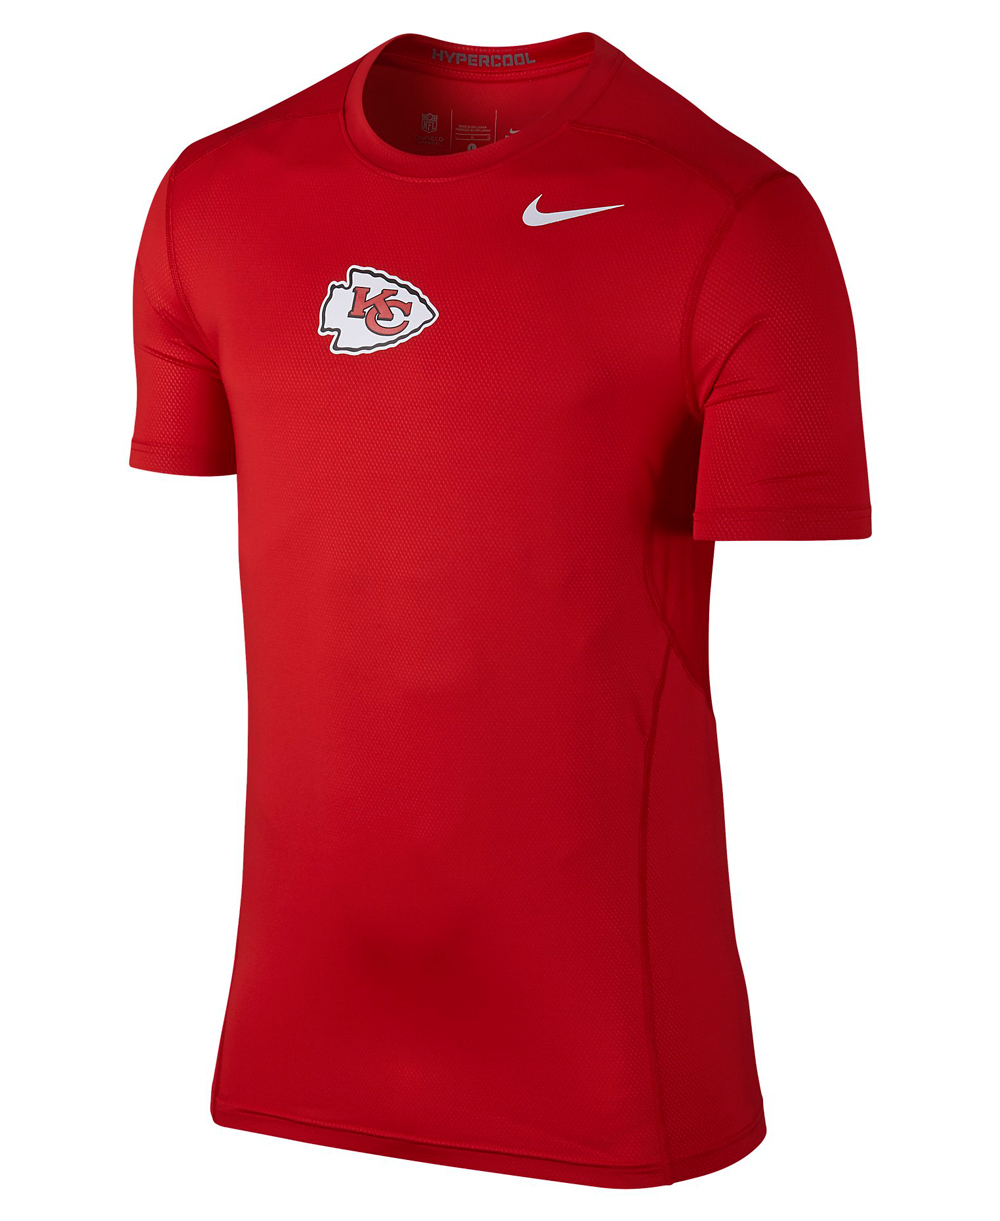 36a5b32cb5 Nike Pro Hypercool Fitted Men's Long Sleeve Compression Shirt NFL C...